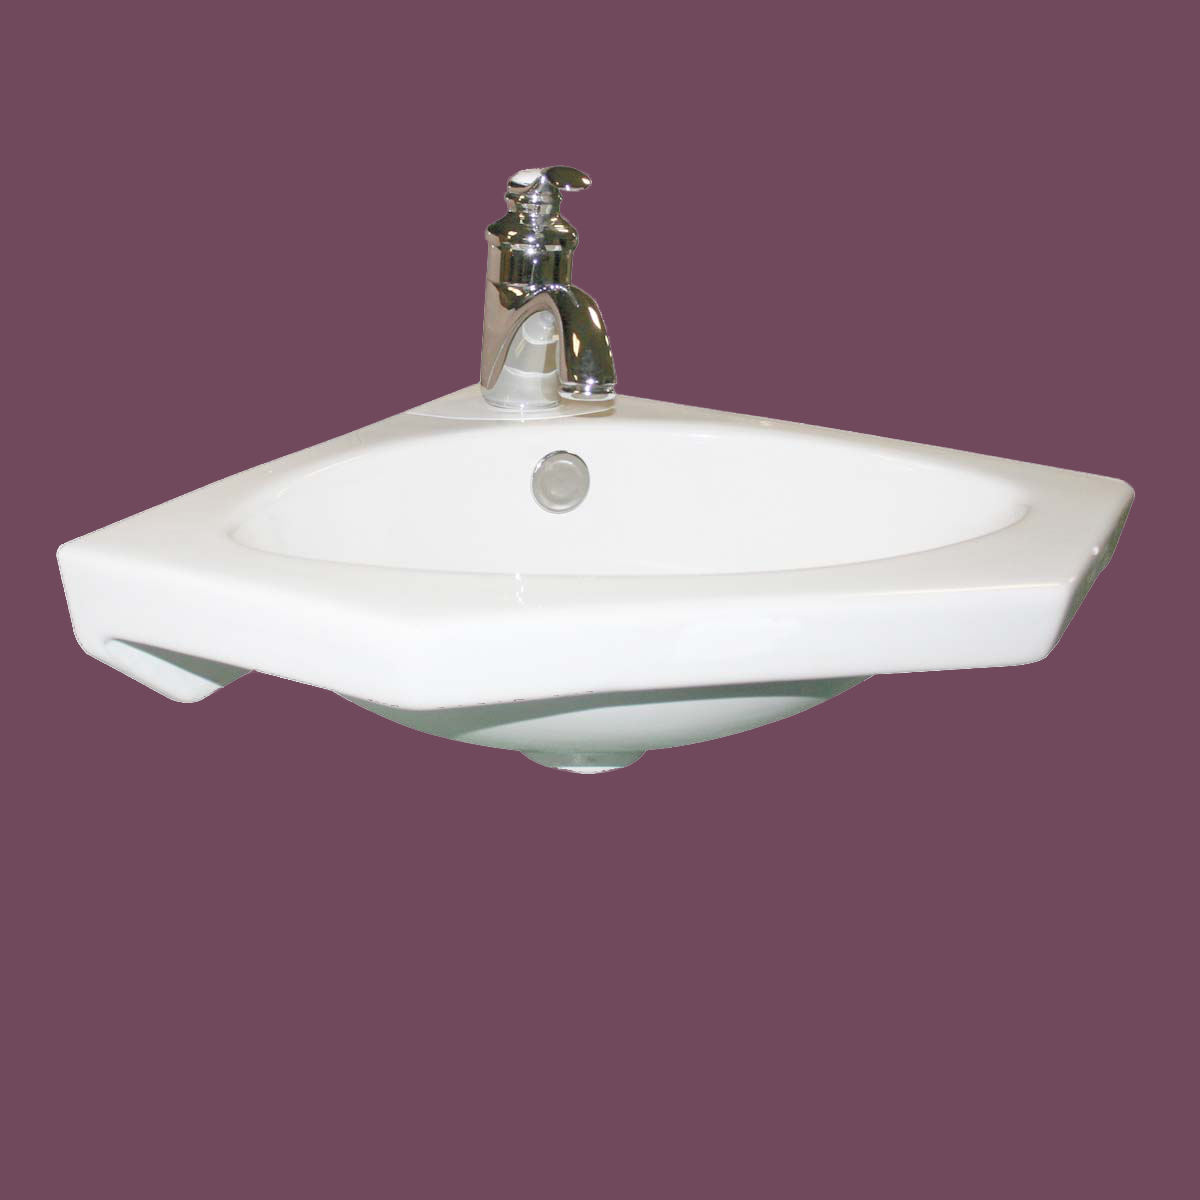 Corner Small Sink : Bathroom Small Corner Sink Basin White Porcelain Wall Mount